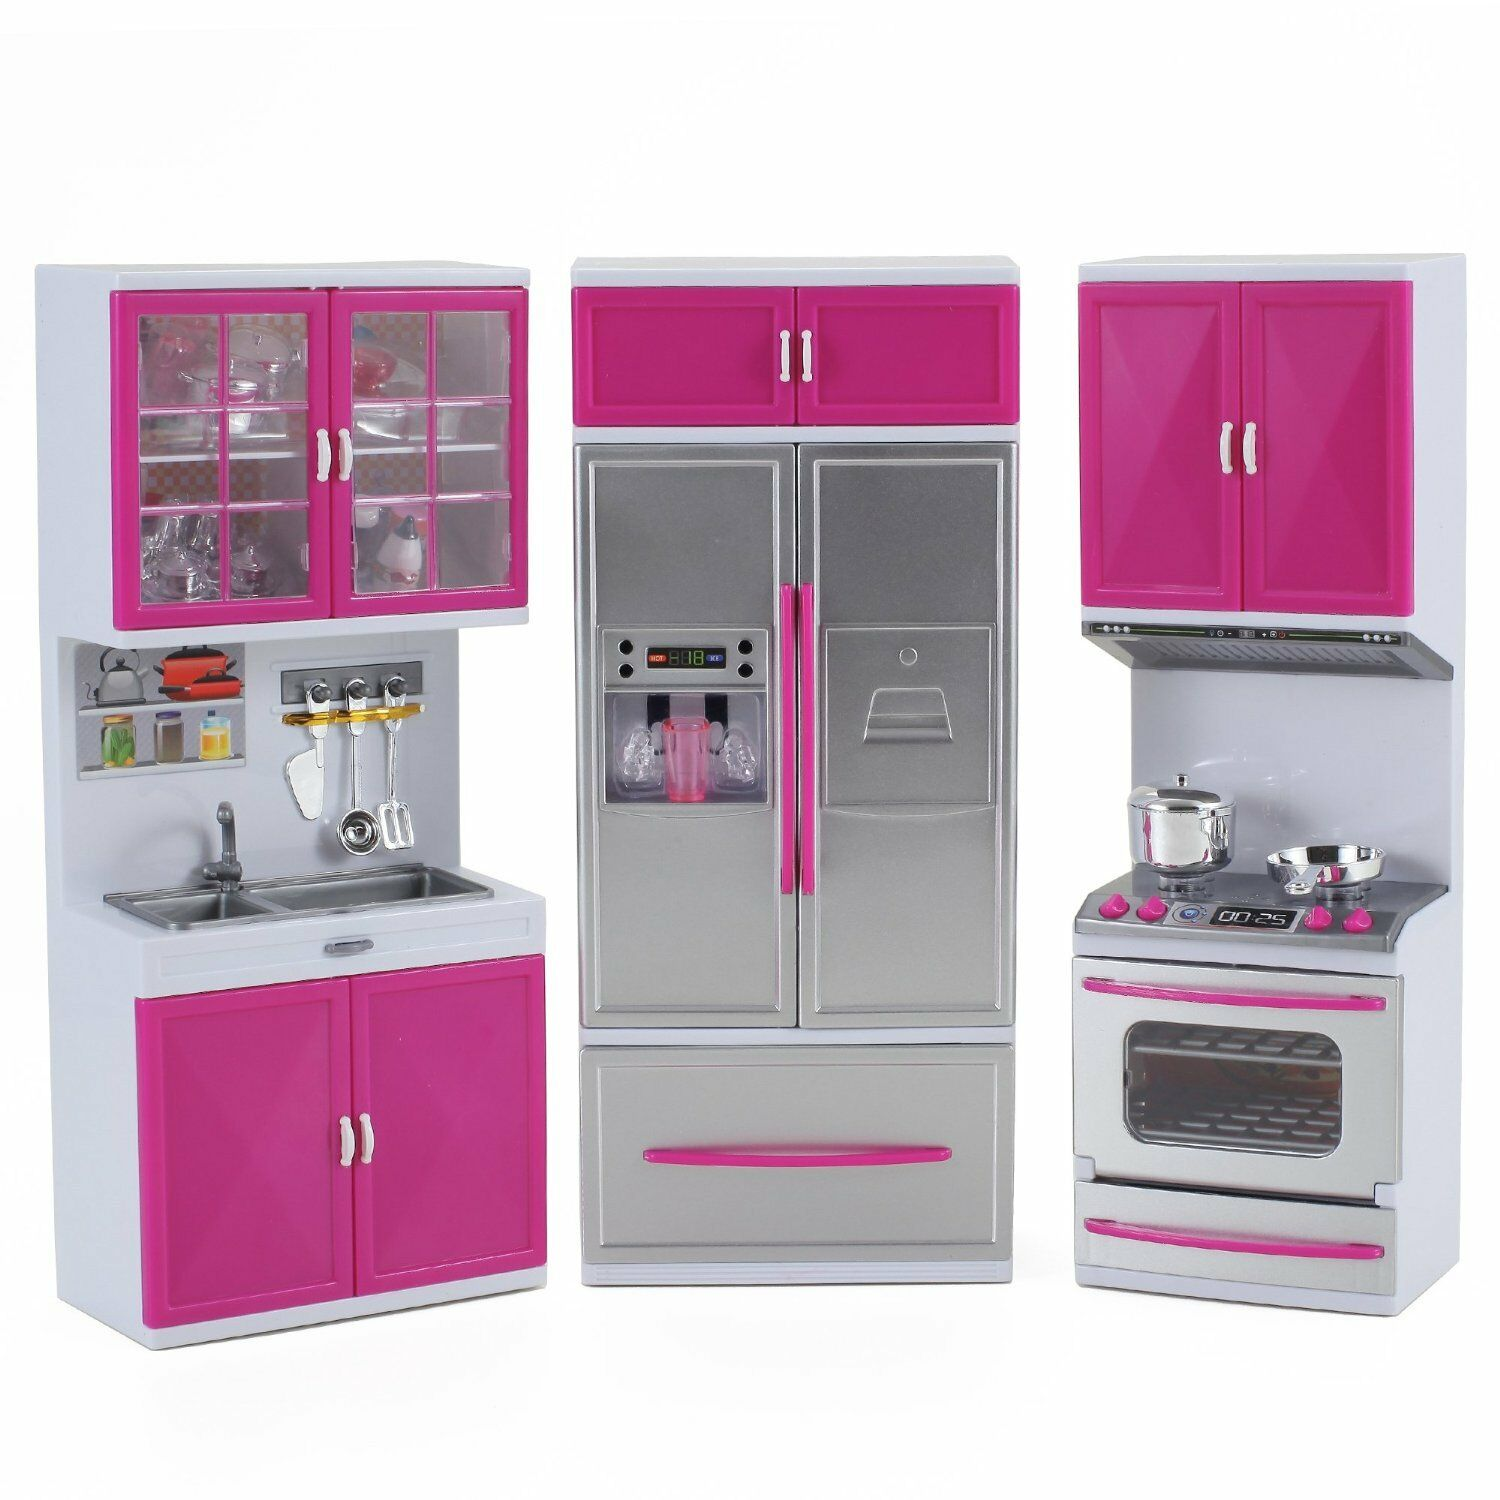 My Modern Kitchen Full Deluxe Kit Battery Operated Kitchen